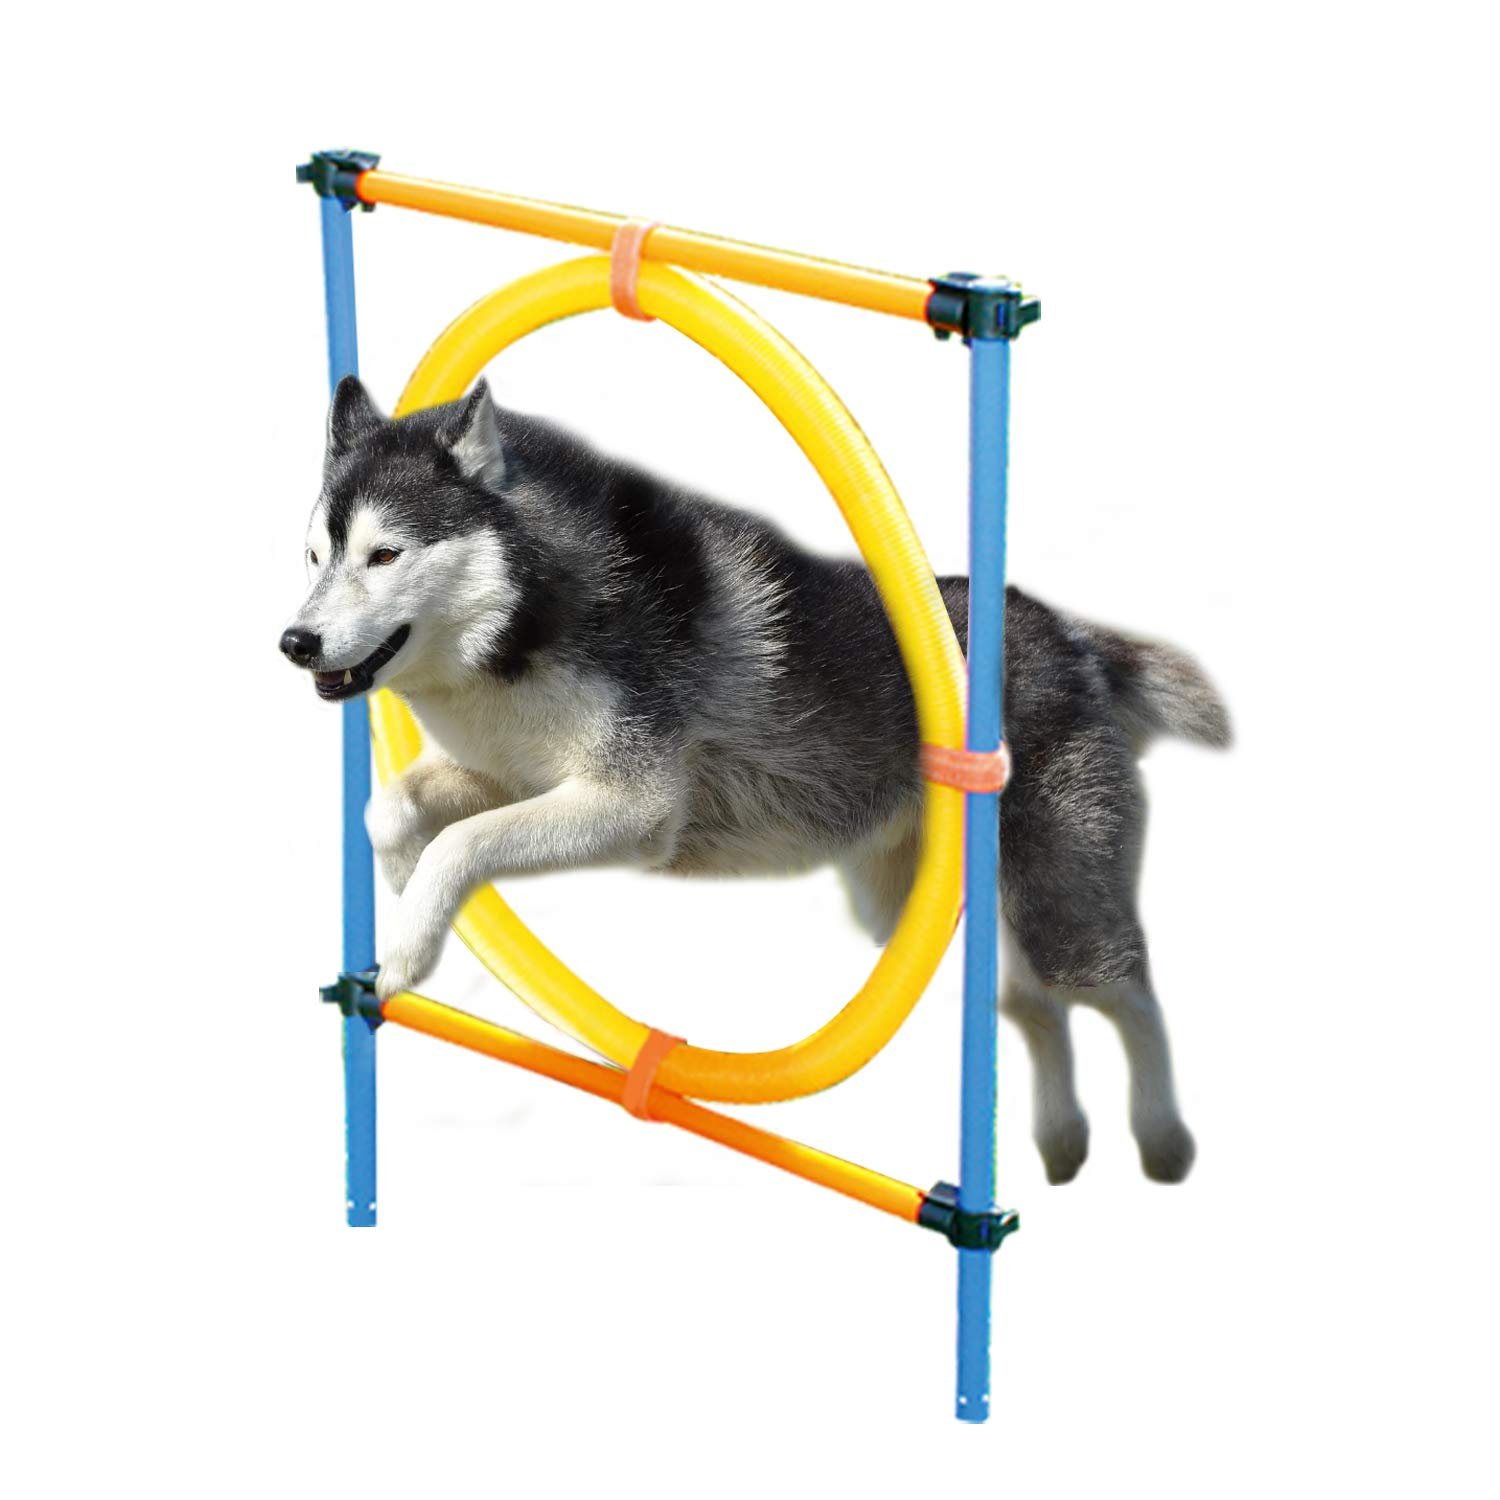 PAWISE Dog Agility Training Hoop, Outdoor Dog Agility Hurdle Toy Set by PAWISE